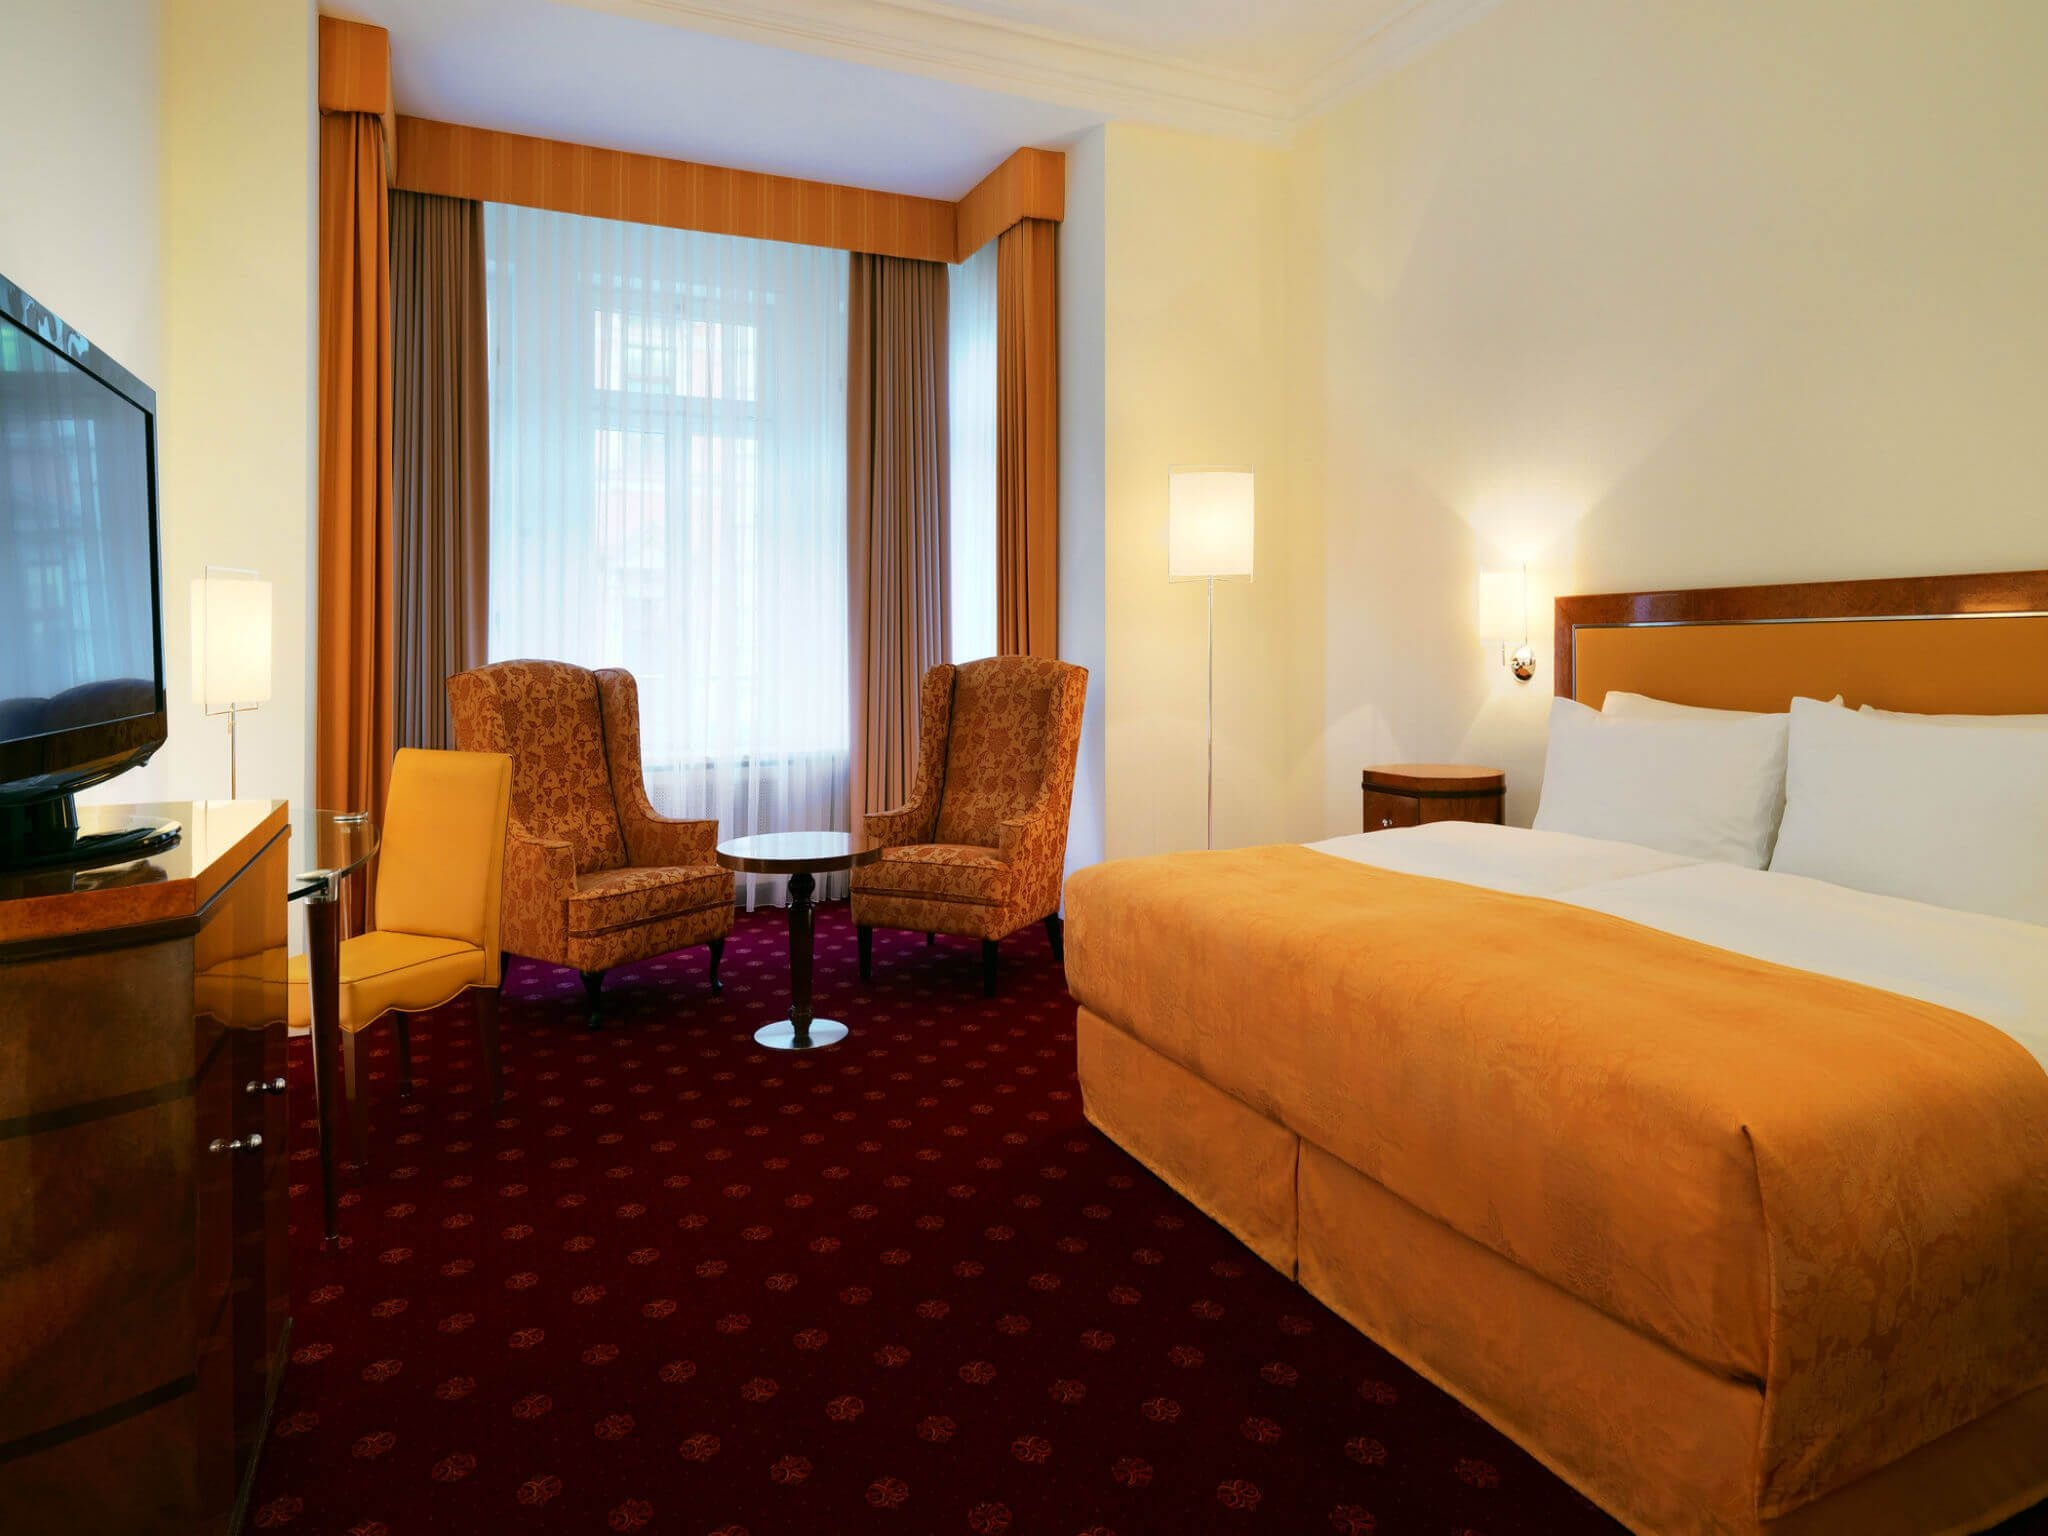 Hotel Leipzig - Grand Deluxe Rooms at Hotel Fürstenhof